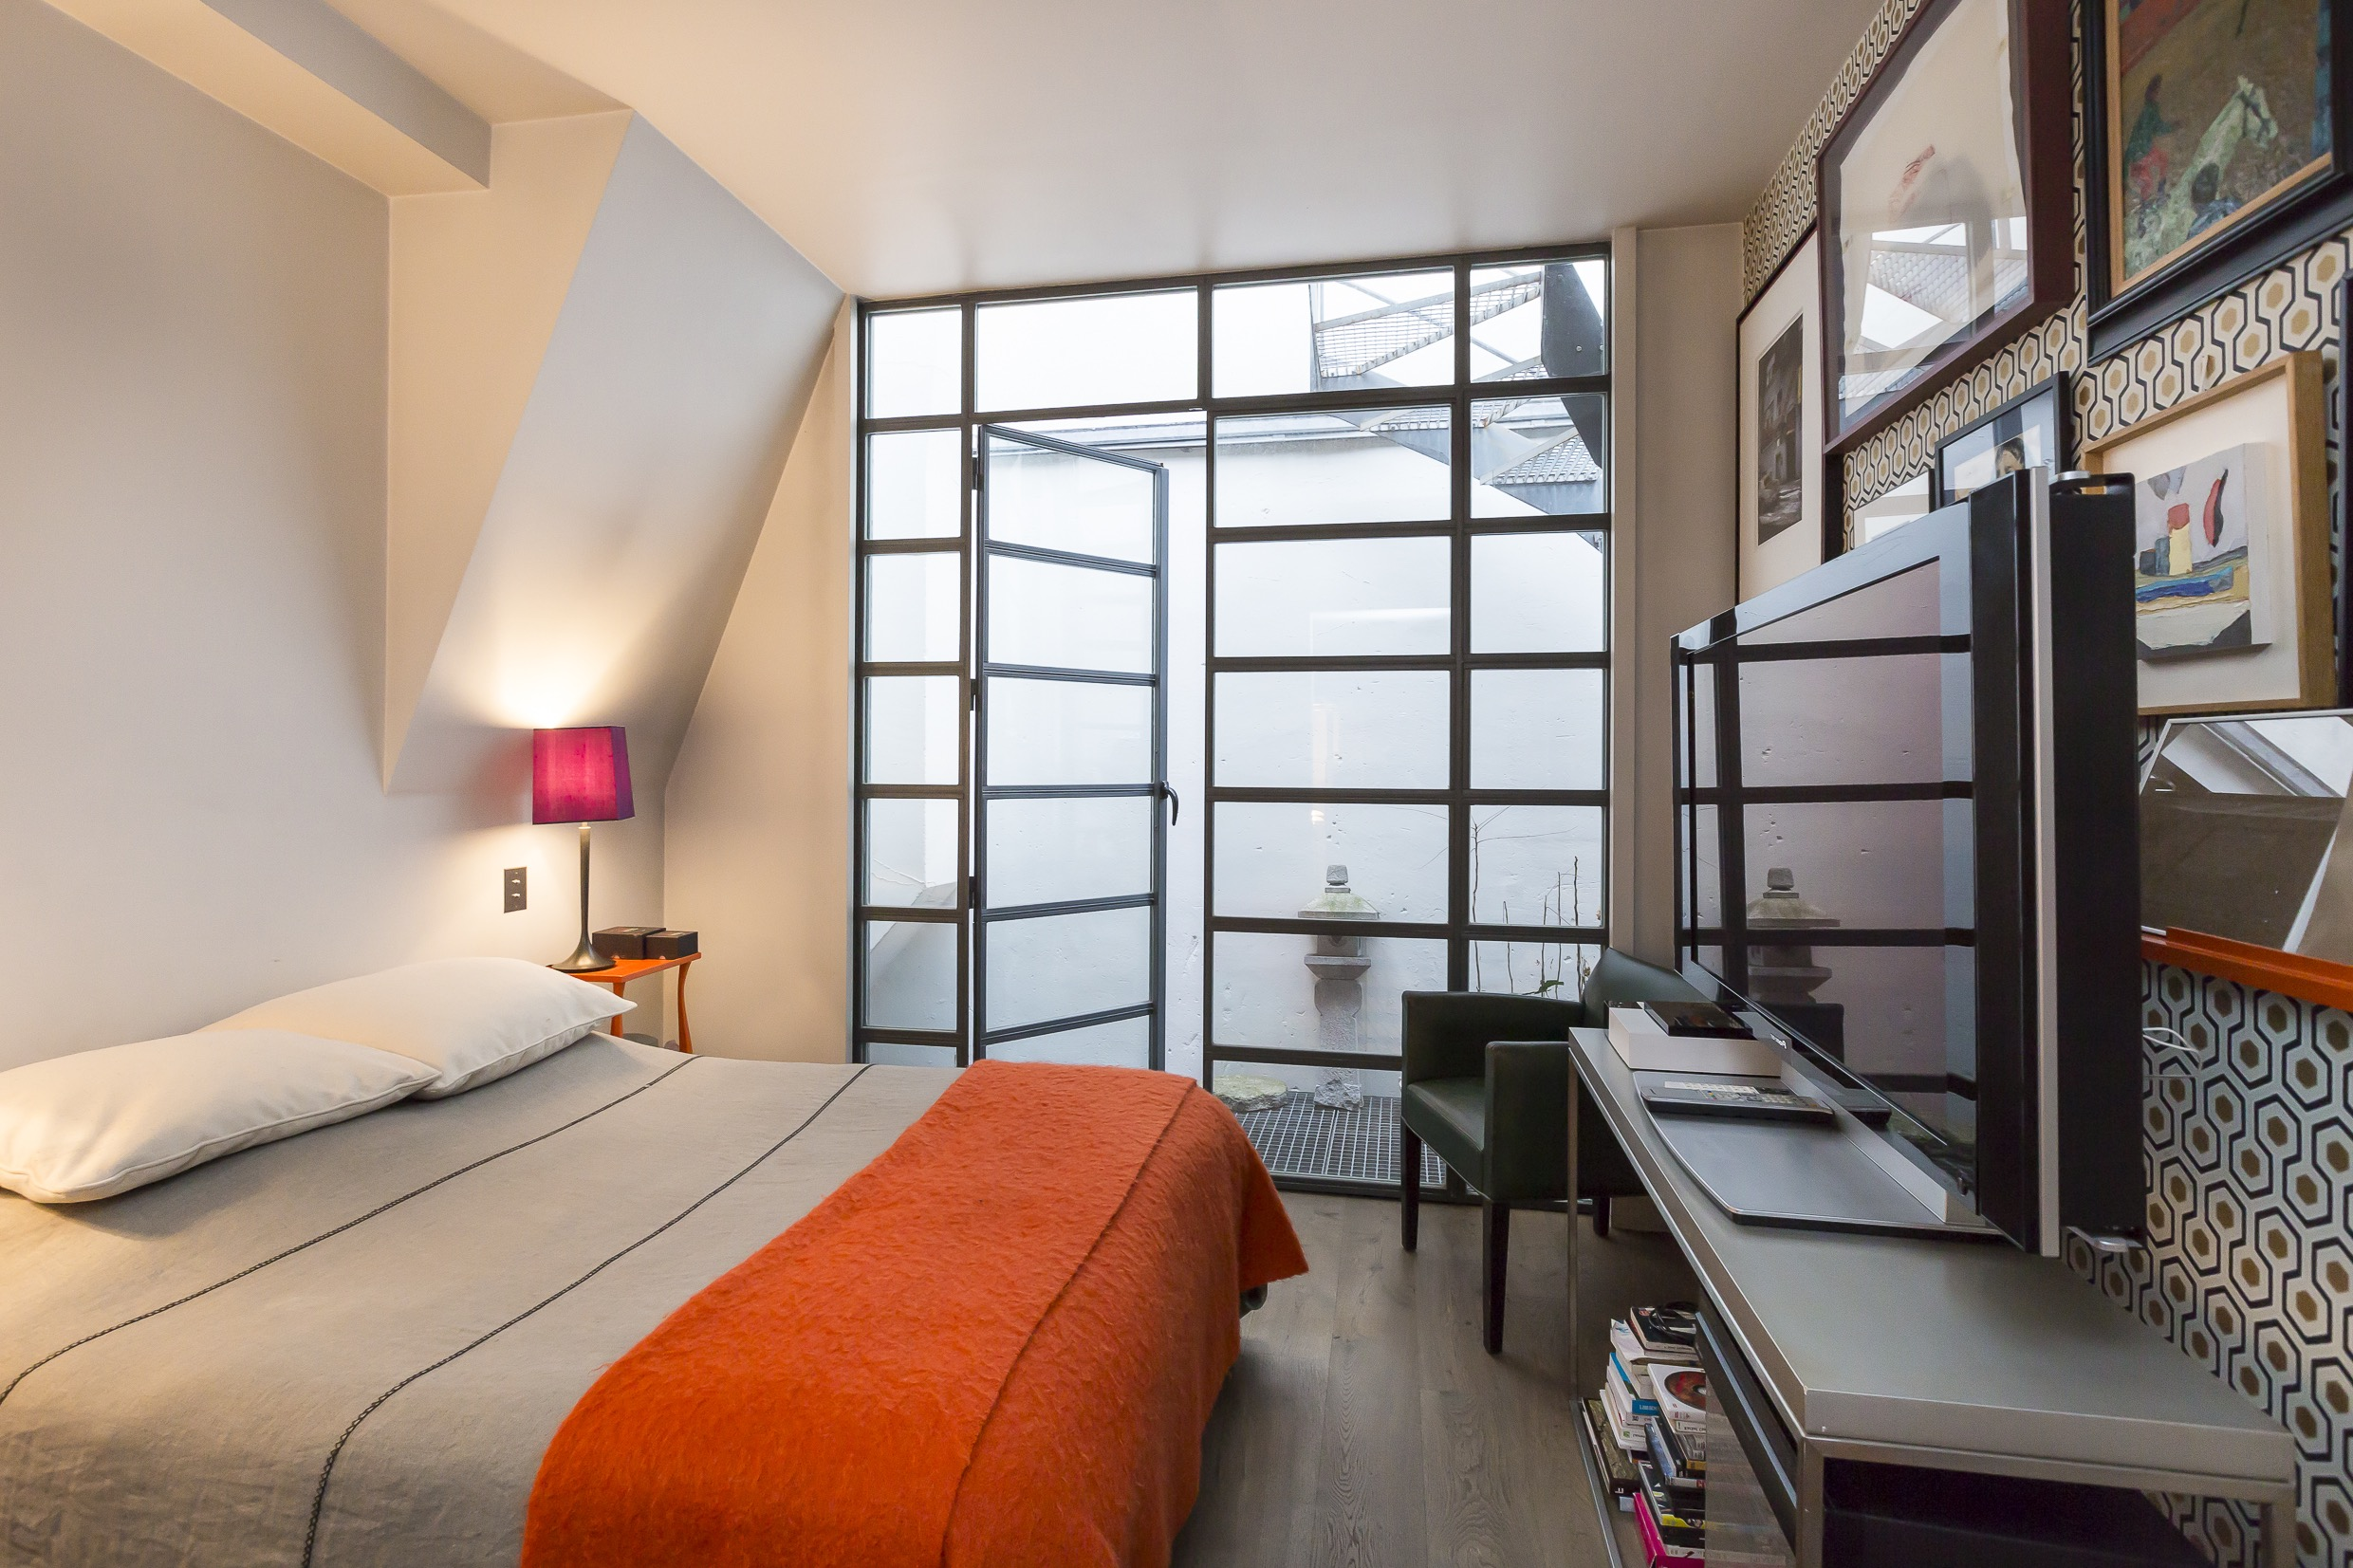 Parisian Loft Bedroom With Floor To Ceiling Glass Doors (Image 19 of 32)